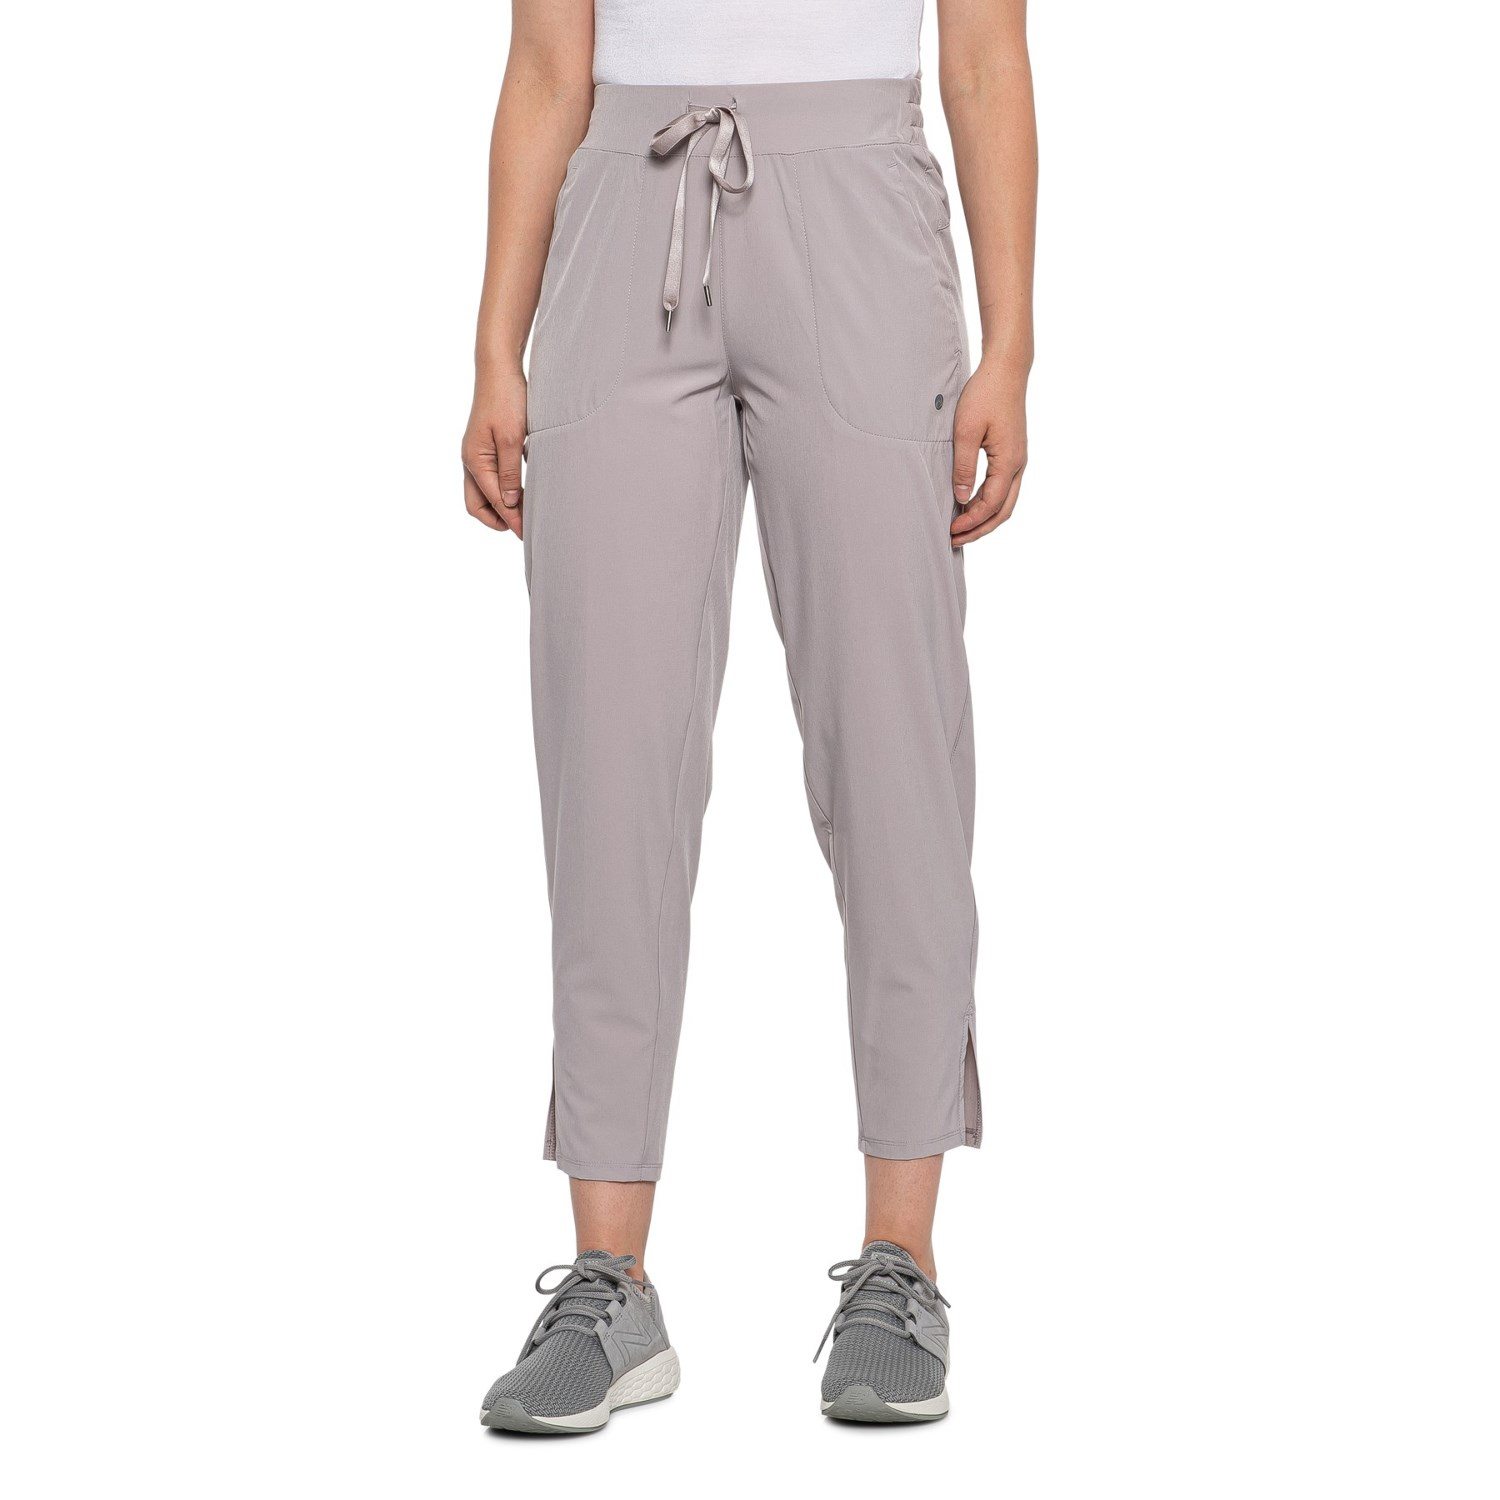 e4d5a80c Apana Woven Vented Ankle Pants (For Women) - Save 46%